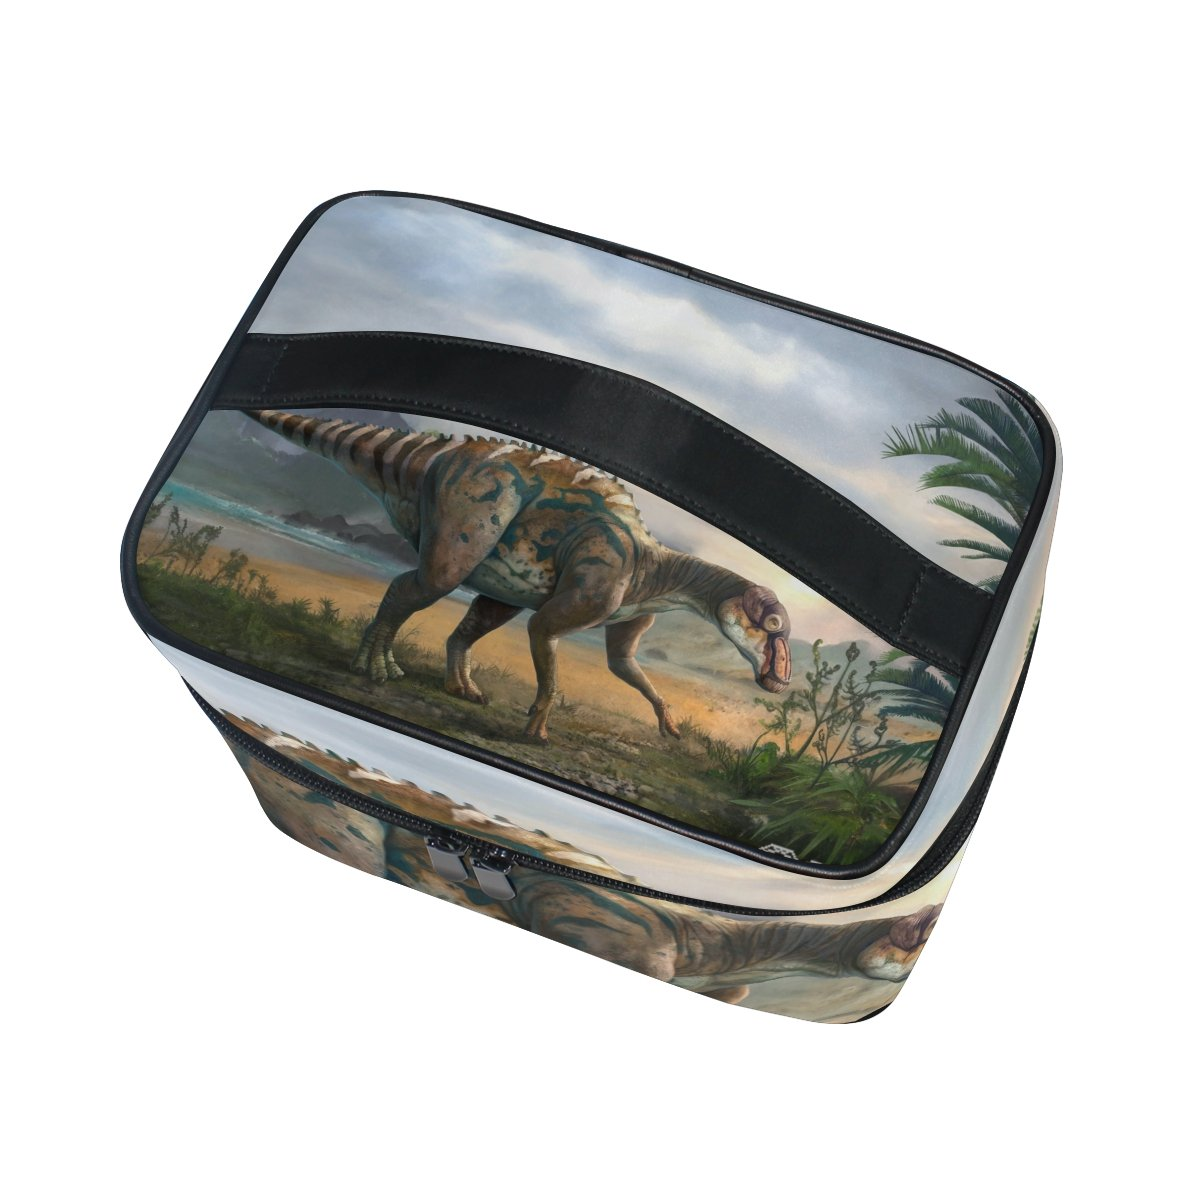 Amazon.com : ALIREA Dinosaur Art Cosmetic Bag Travel Makeup Train Cases Storage Organizer : Beauty